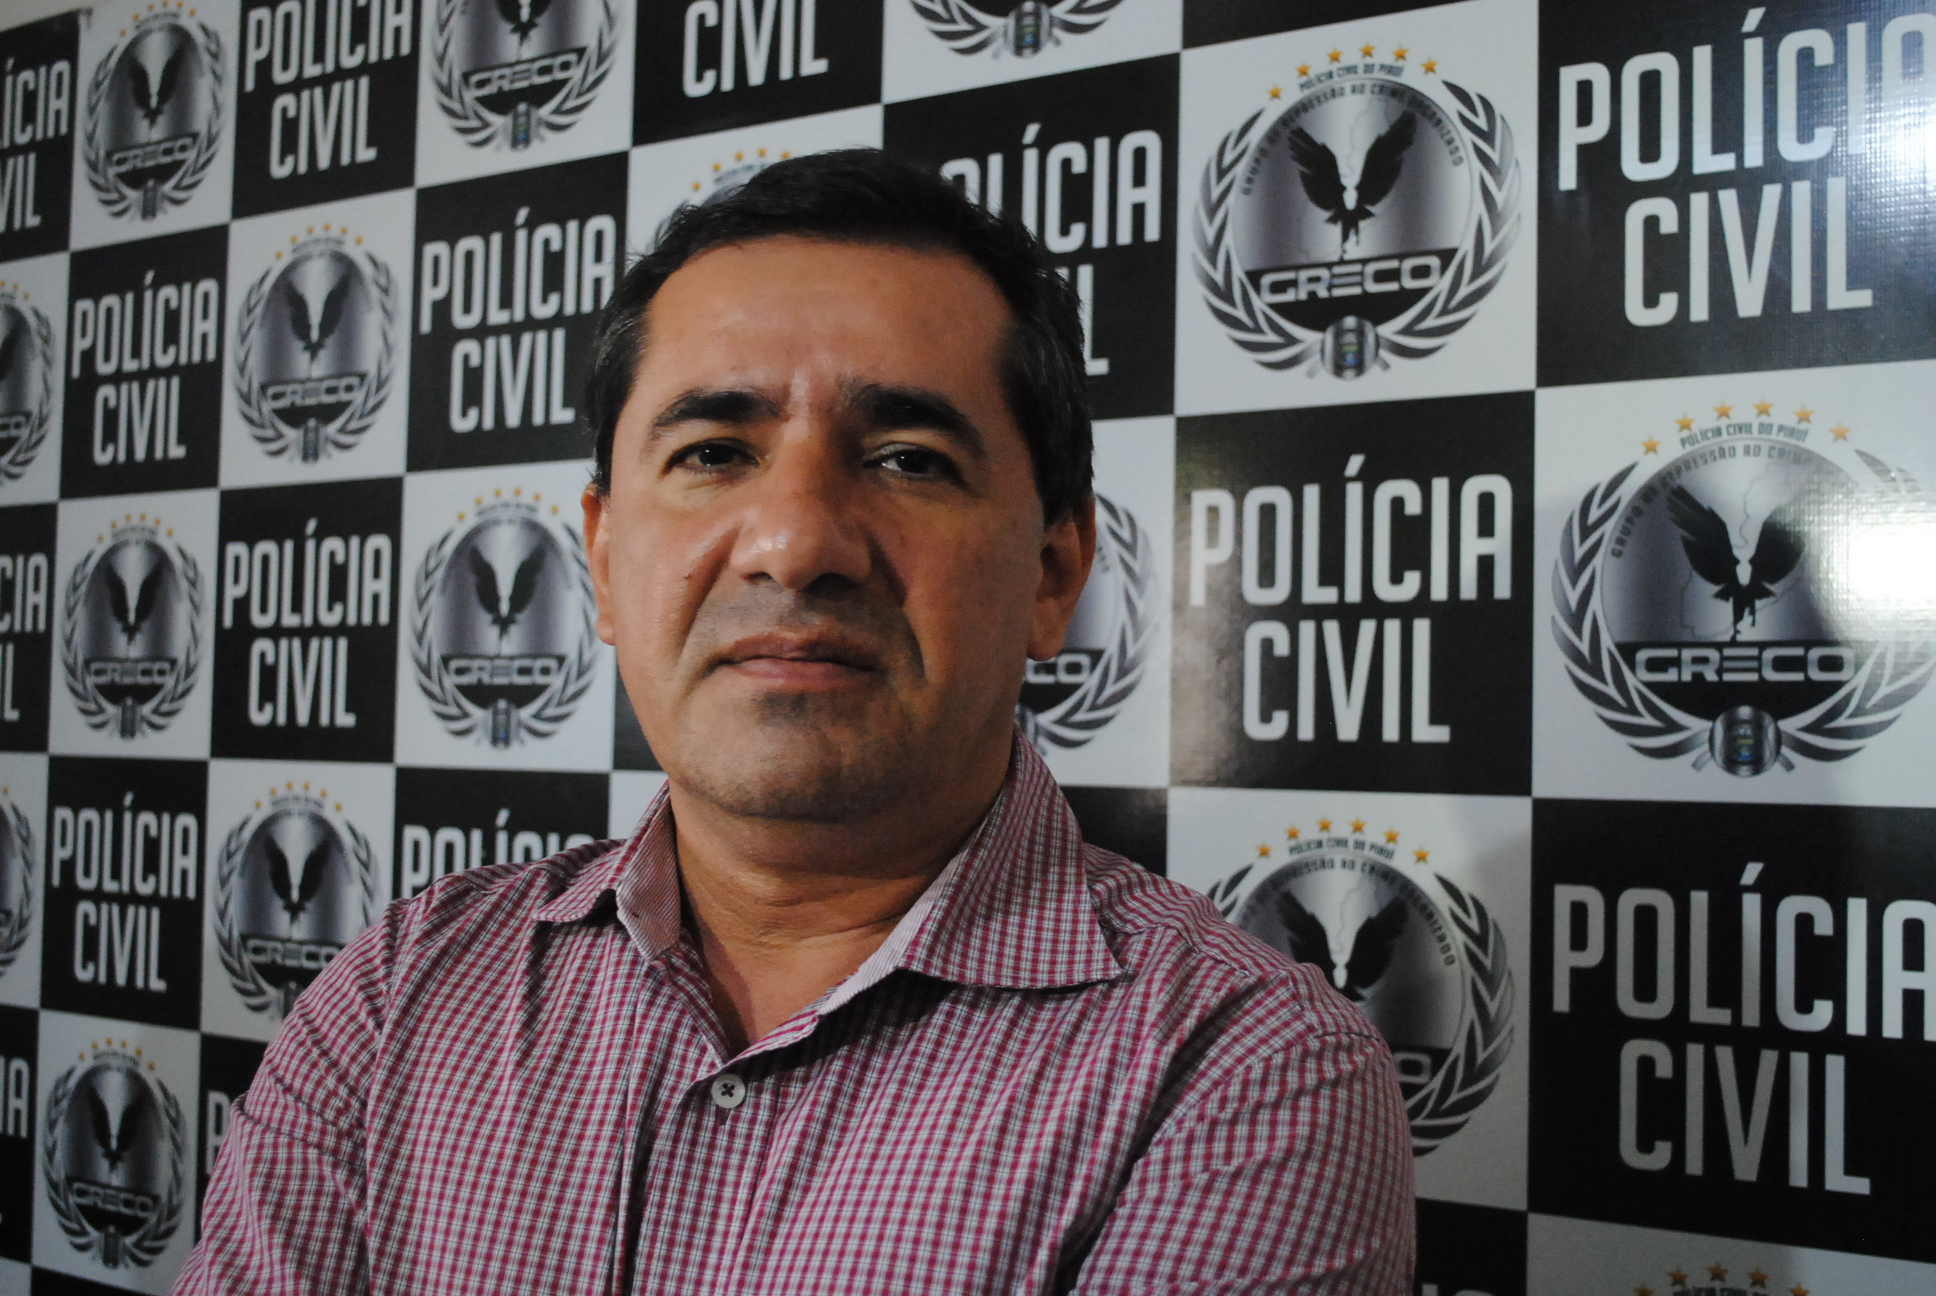 Delegado Willame Martins, comandante do GRECO